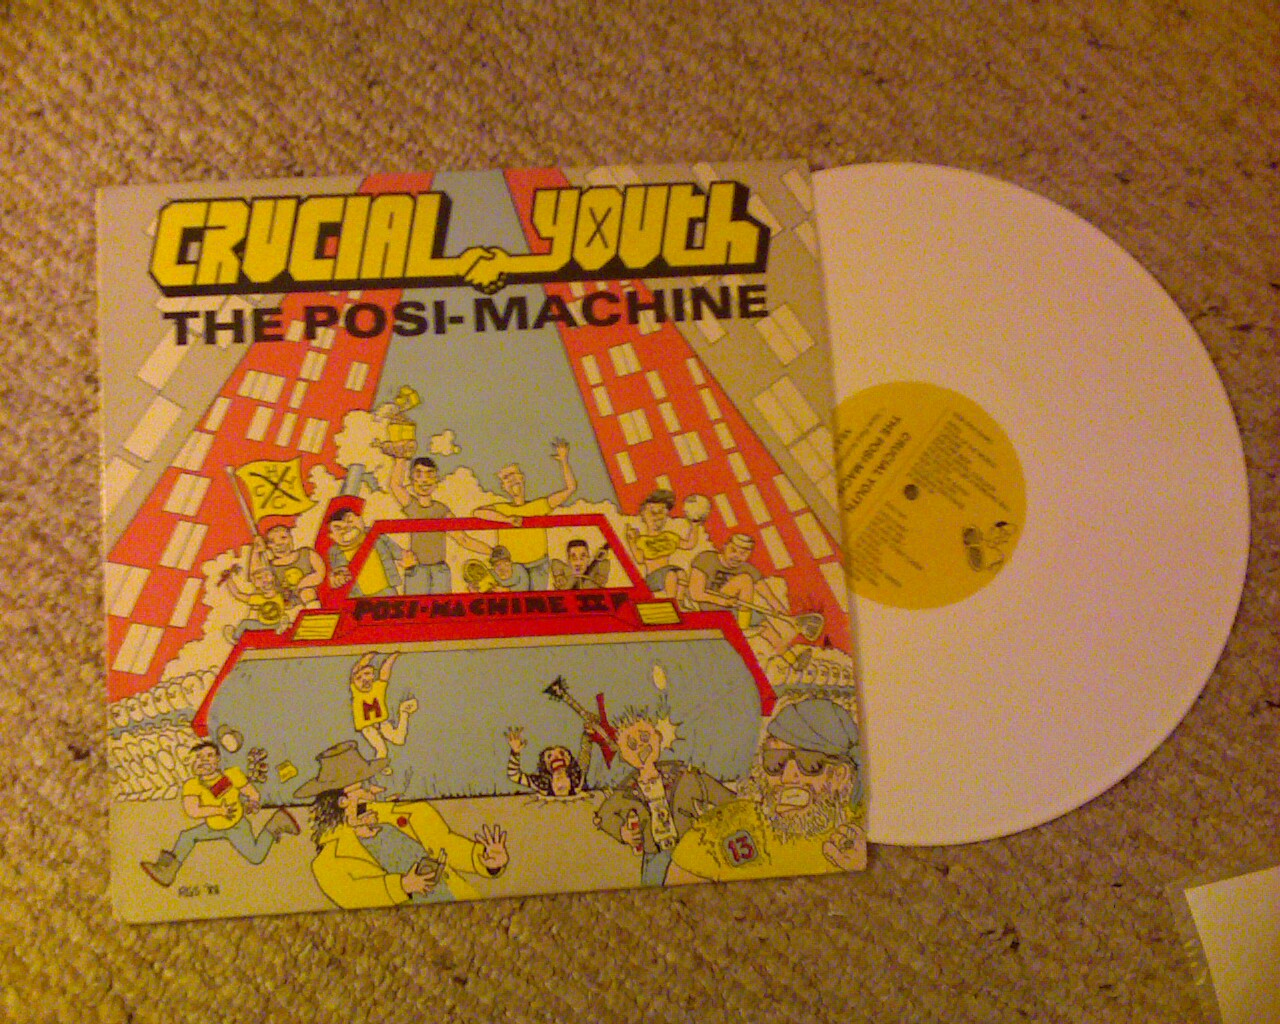 album cover + record for Crucial Youth - The Posi-Machine